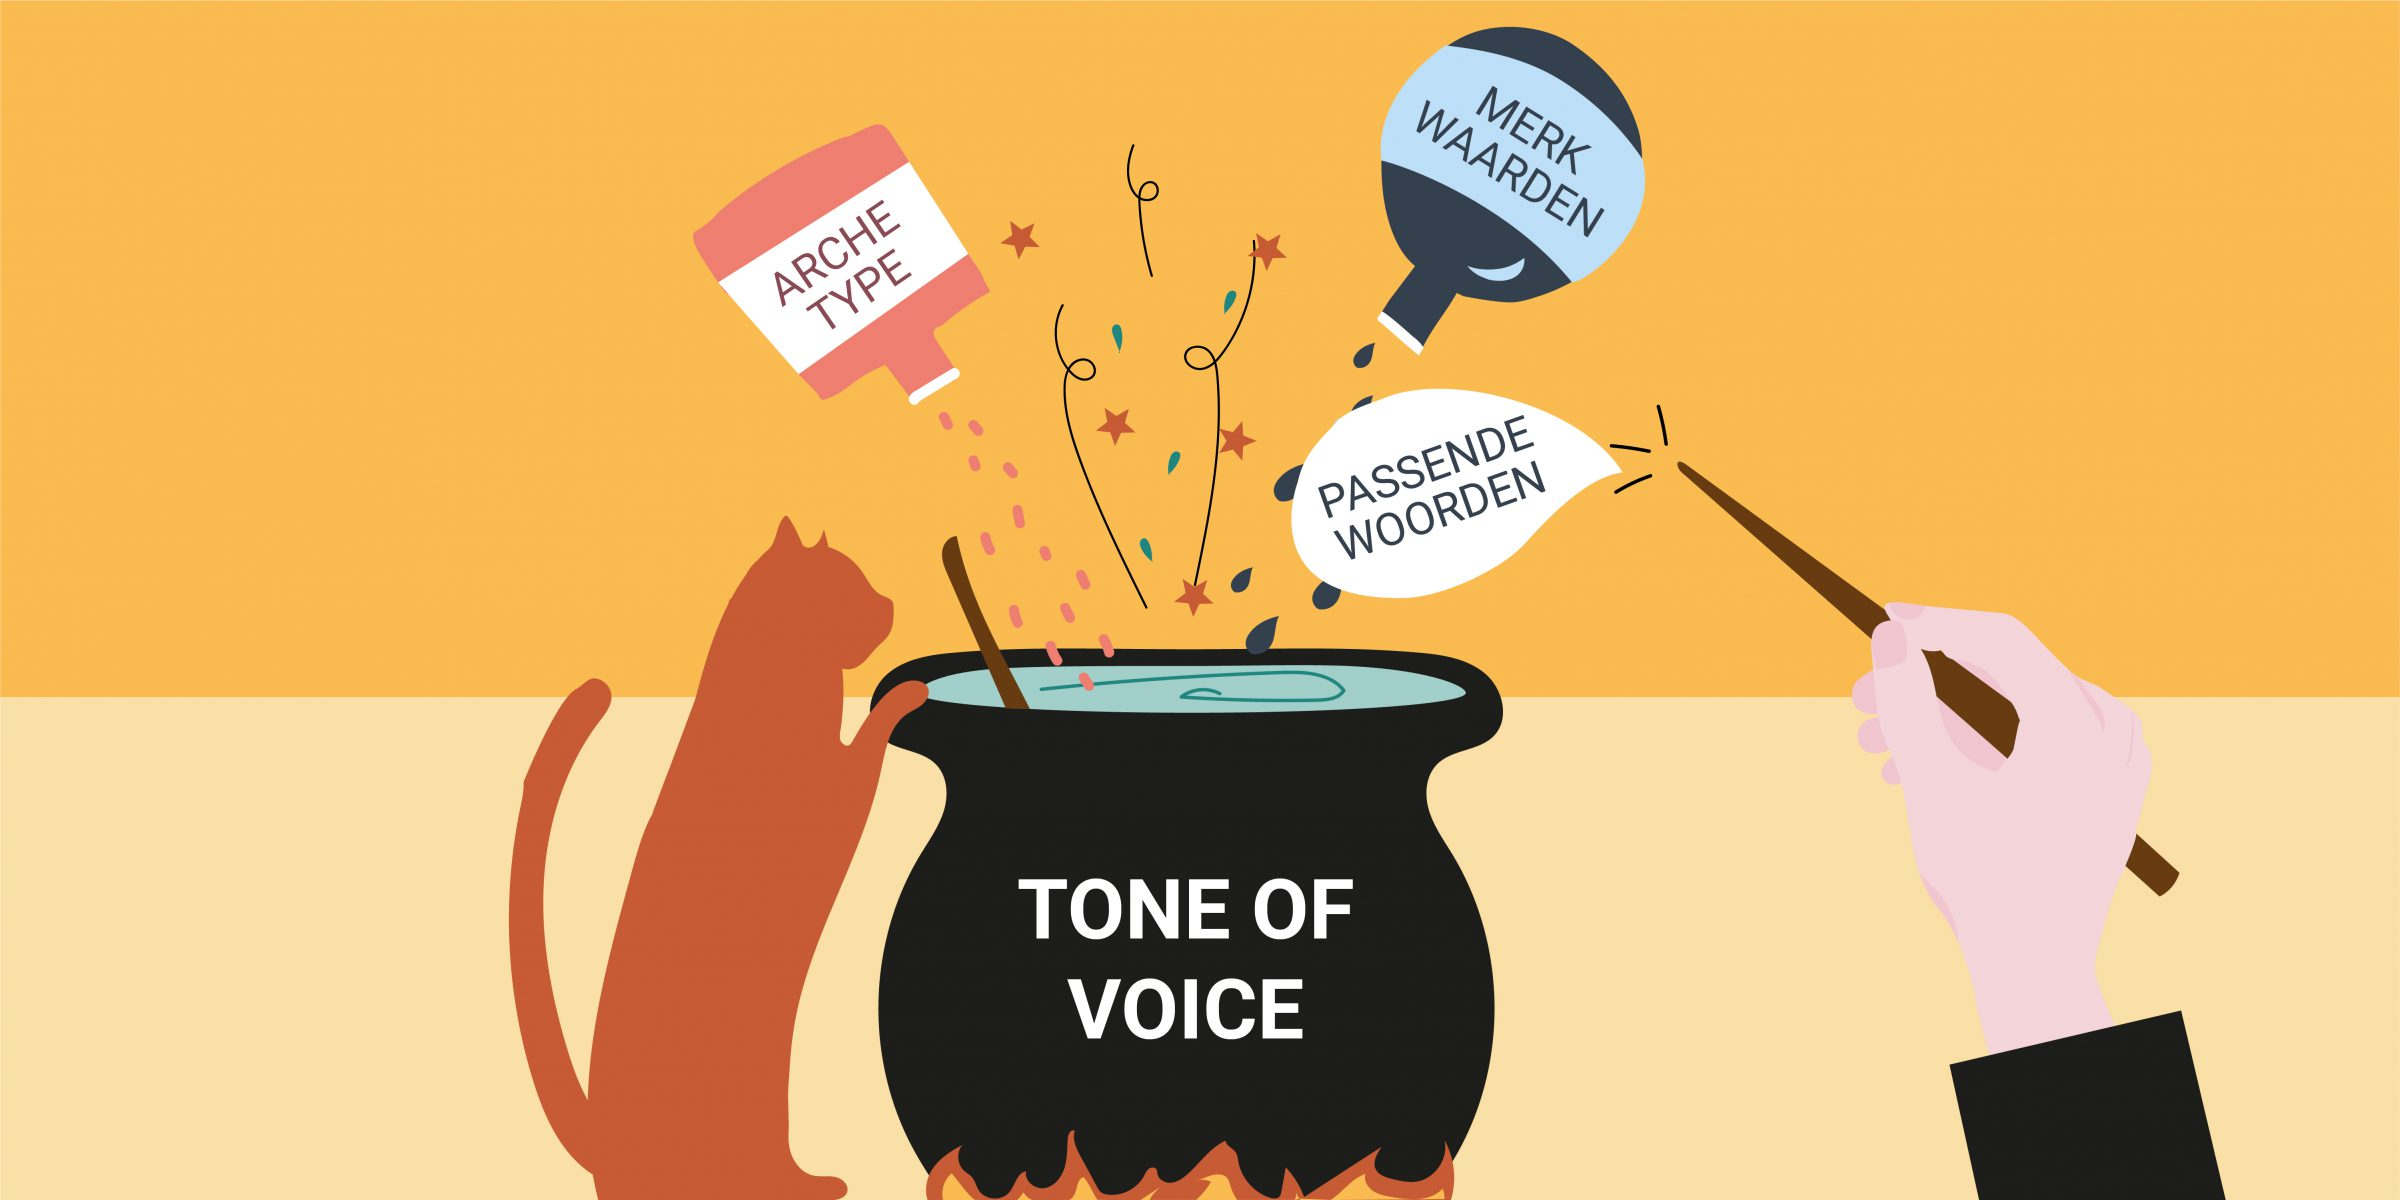 tone-of-voice-basis